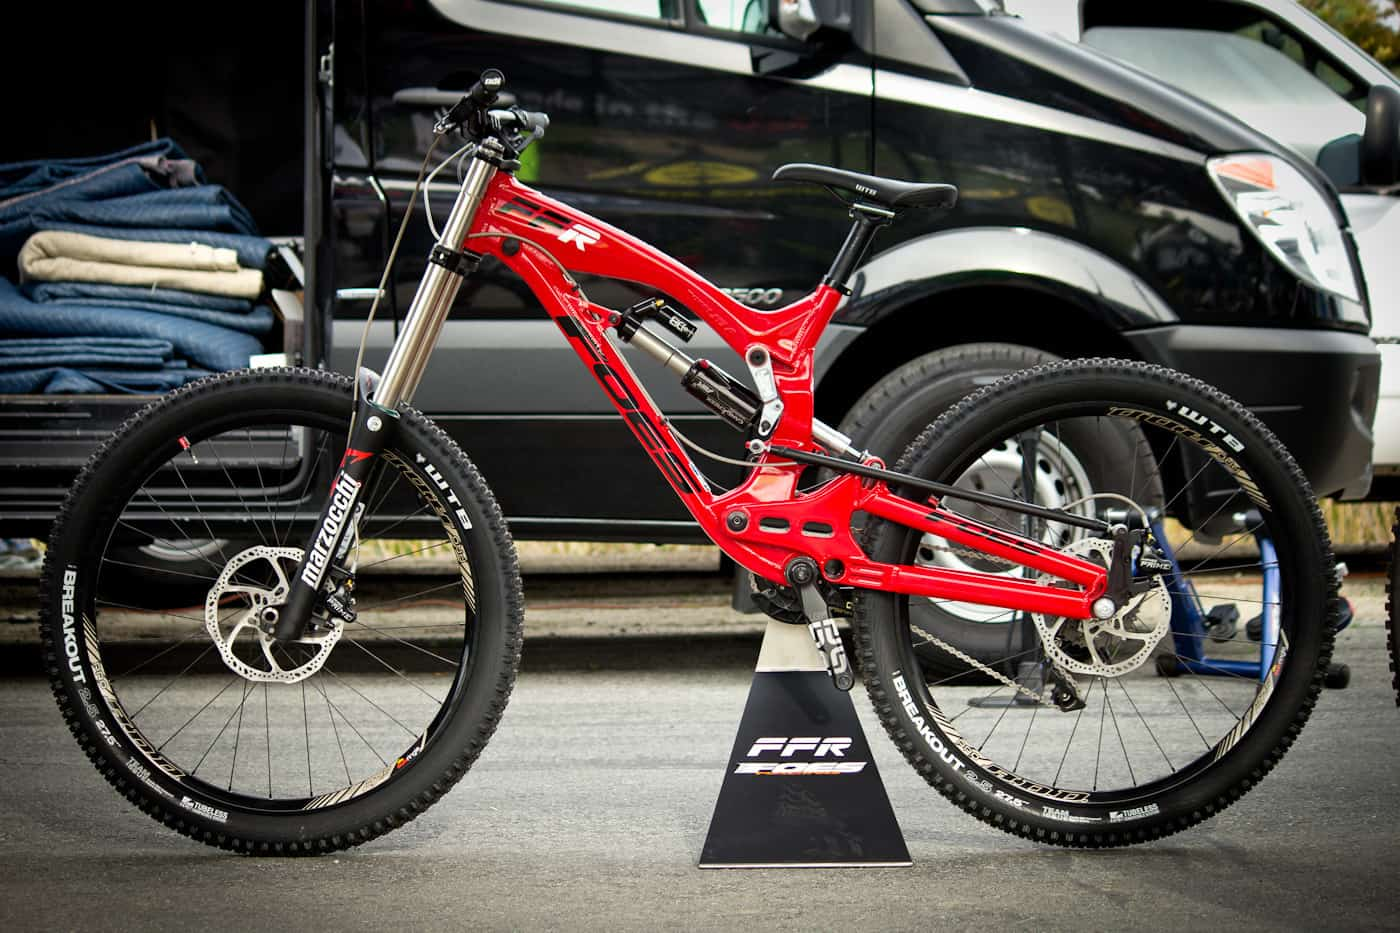 2015 Foes Ffr Prototype 27 5 Downhill Mountain Bike Made